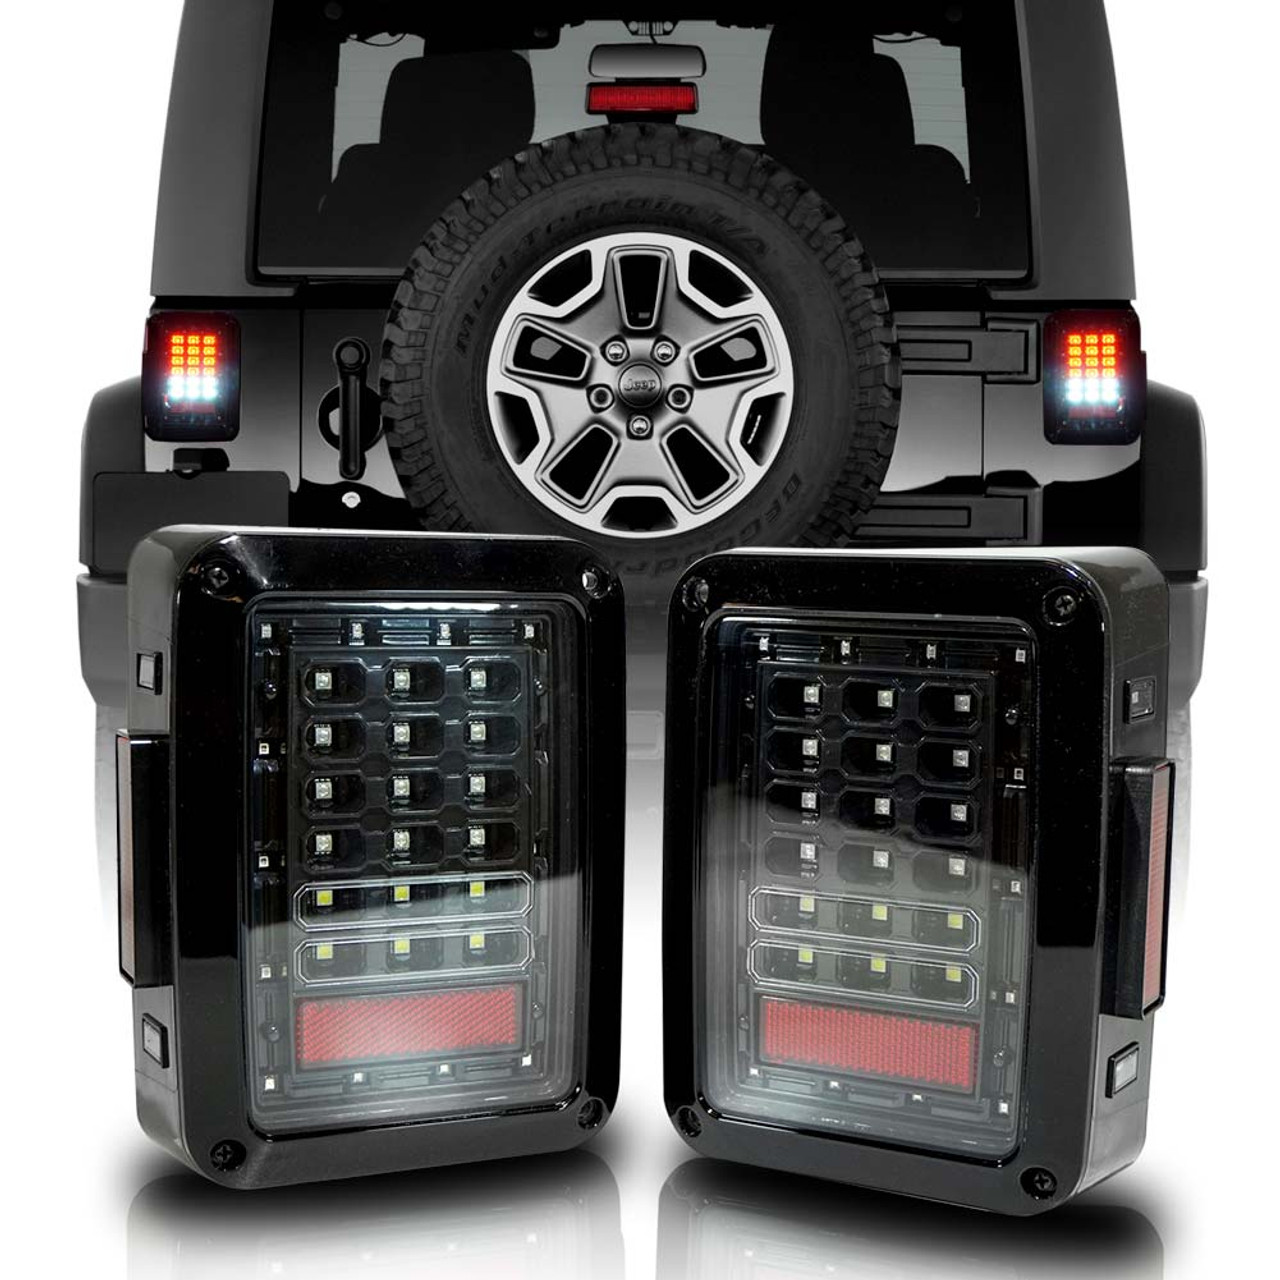 XPE Black LED Tail Lights for Wrangler JK 2007-2018 - JPFEDERATION | White Jeep Sahara Lifted With Tire Carrier And Led Tail Lights |  | Parts Accessories for Jeep Wrangler JL JK TJ Gladiator